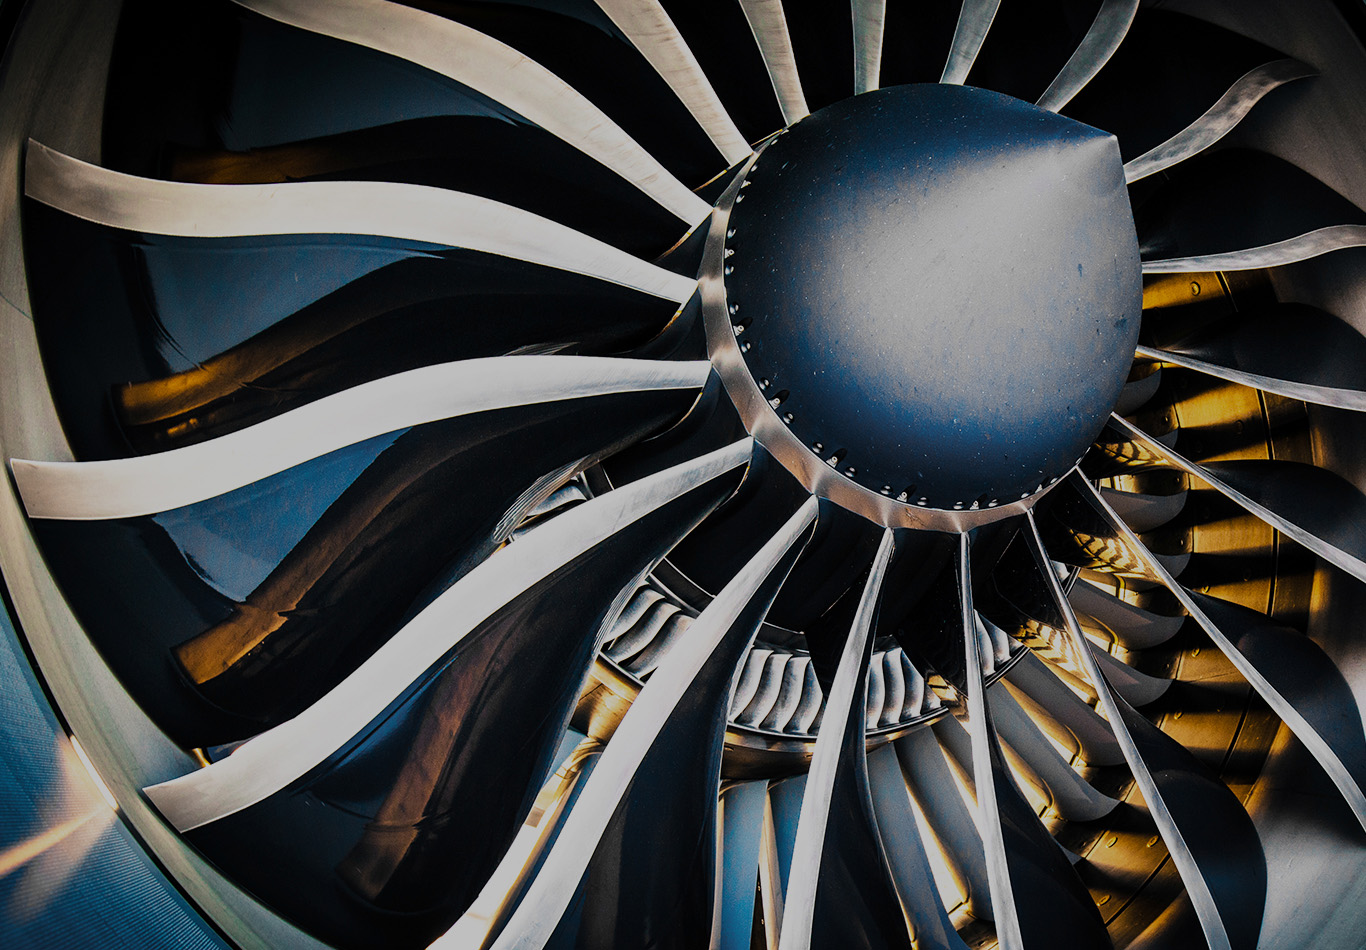 A detailed shot of a turbine engine